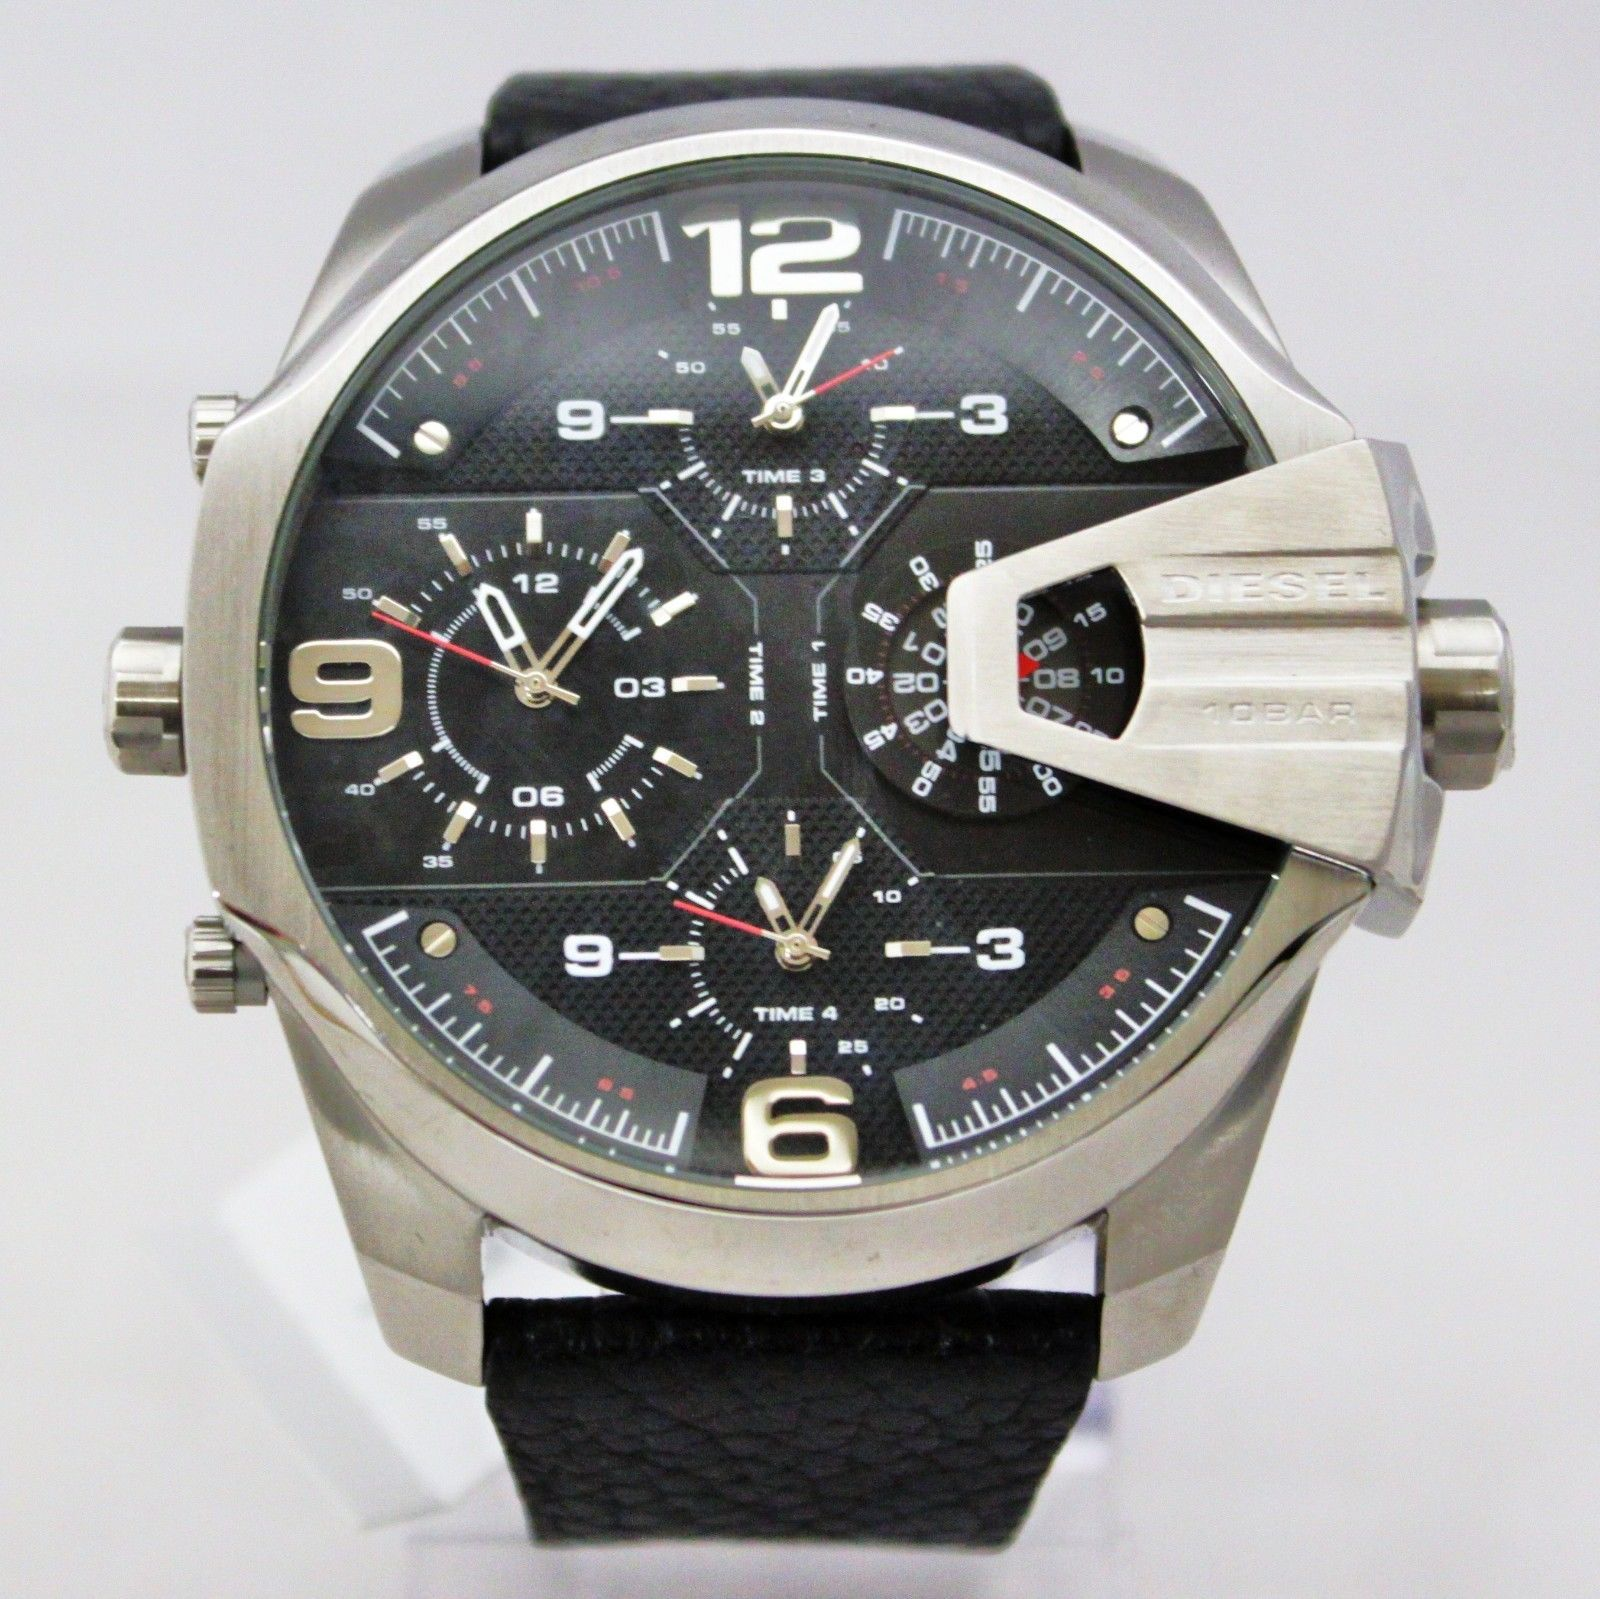 New Diesel DZ7376 Uber Chief Chronograph Iridescent 4-Time Black Band Men Watch